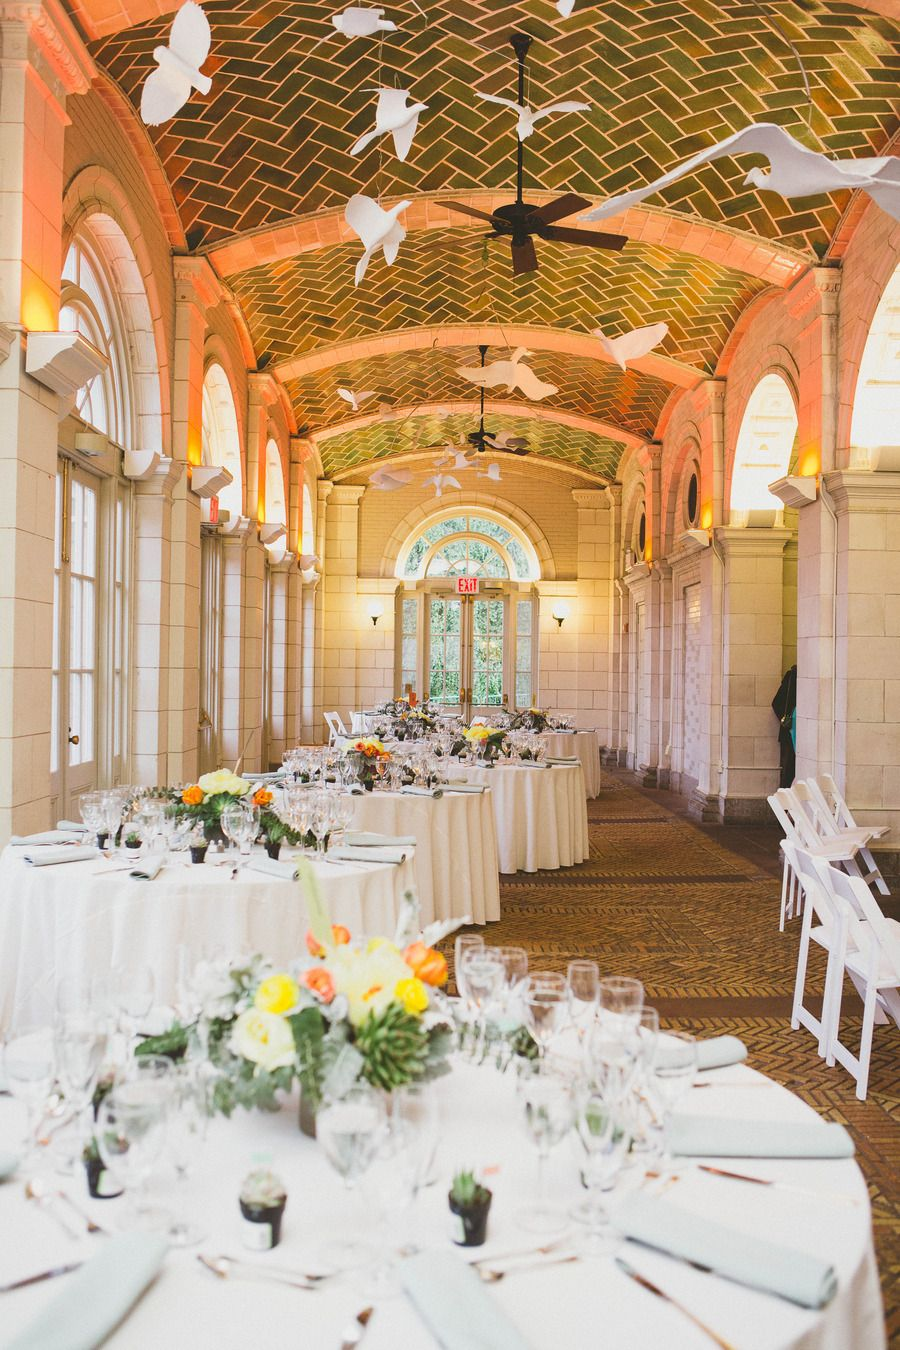 Prospect Park Boathouse Wedding from Nadya Furnari